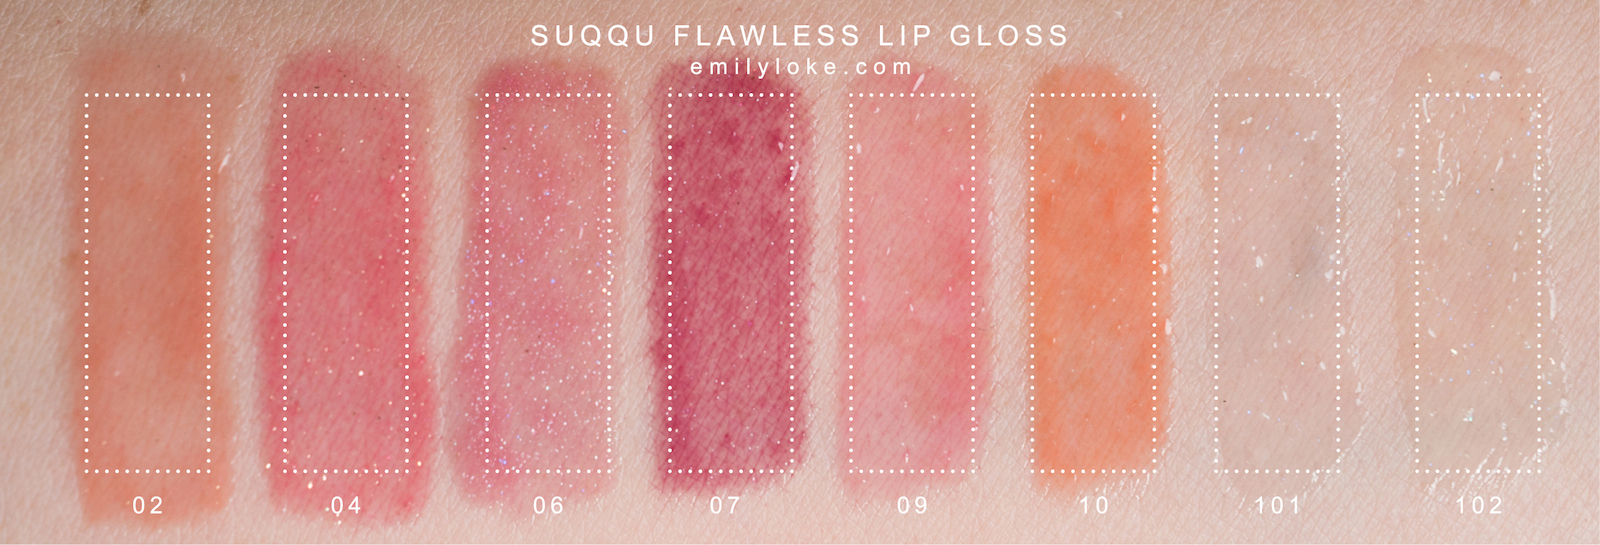 suqqu flawless lip gloss swatches